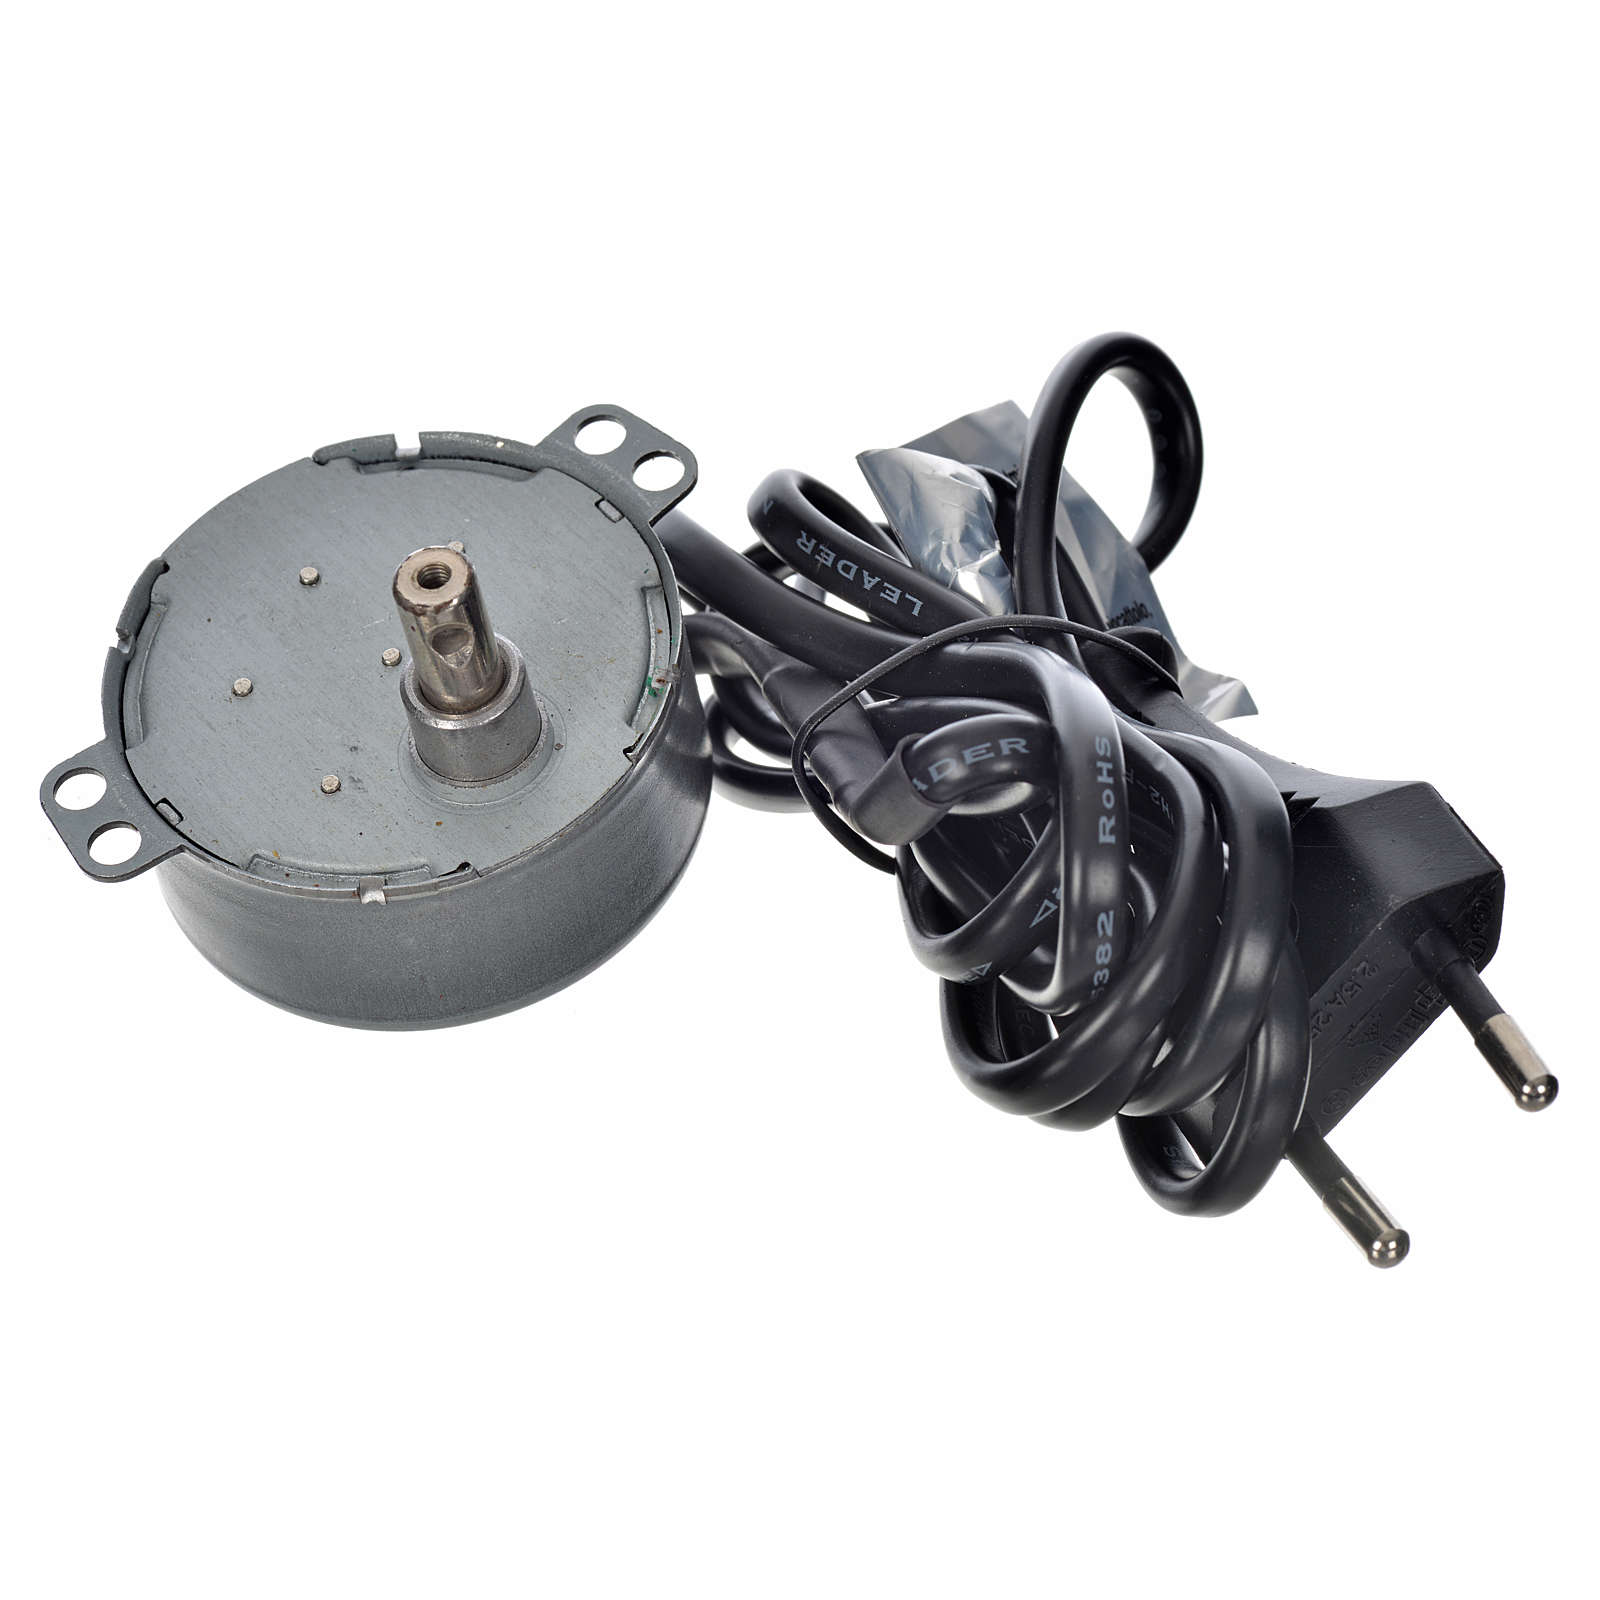 Motor for nativity movements, 4watts, 2spins/minute 4